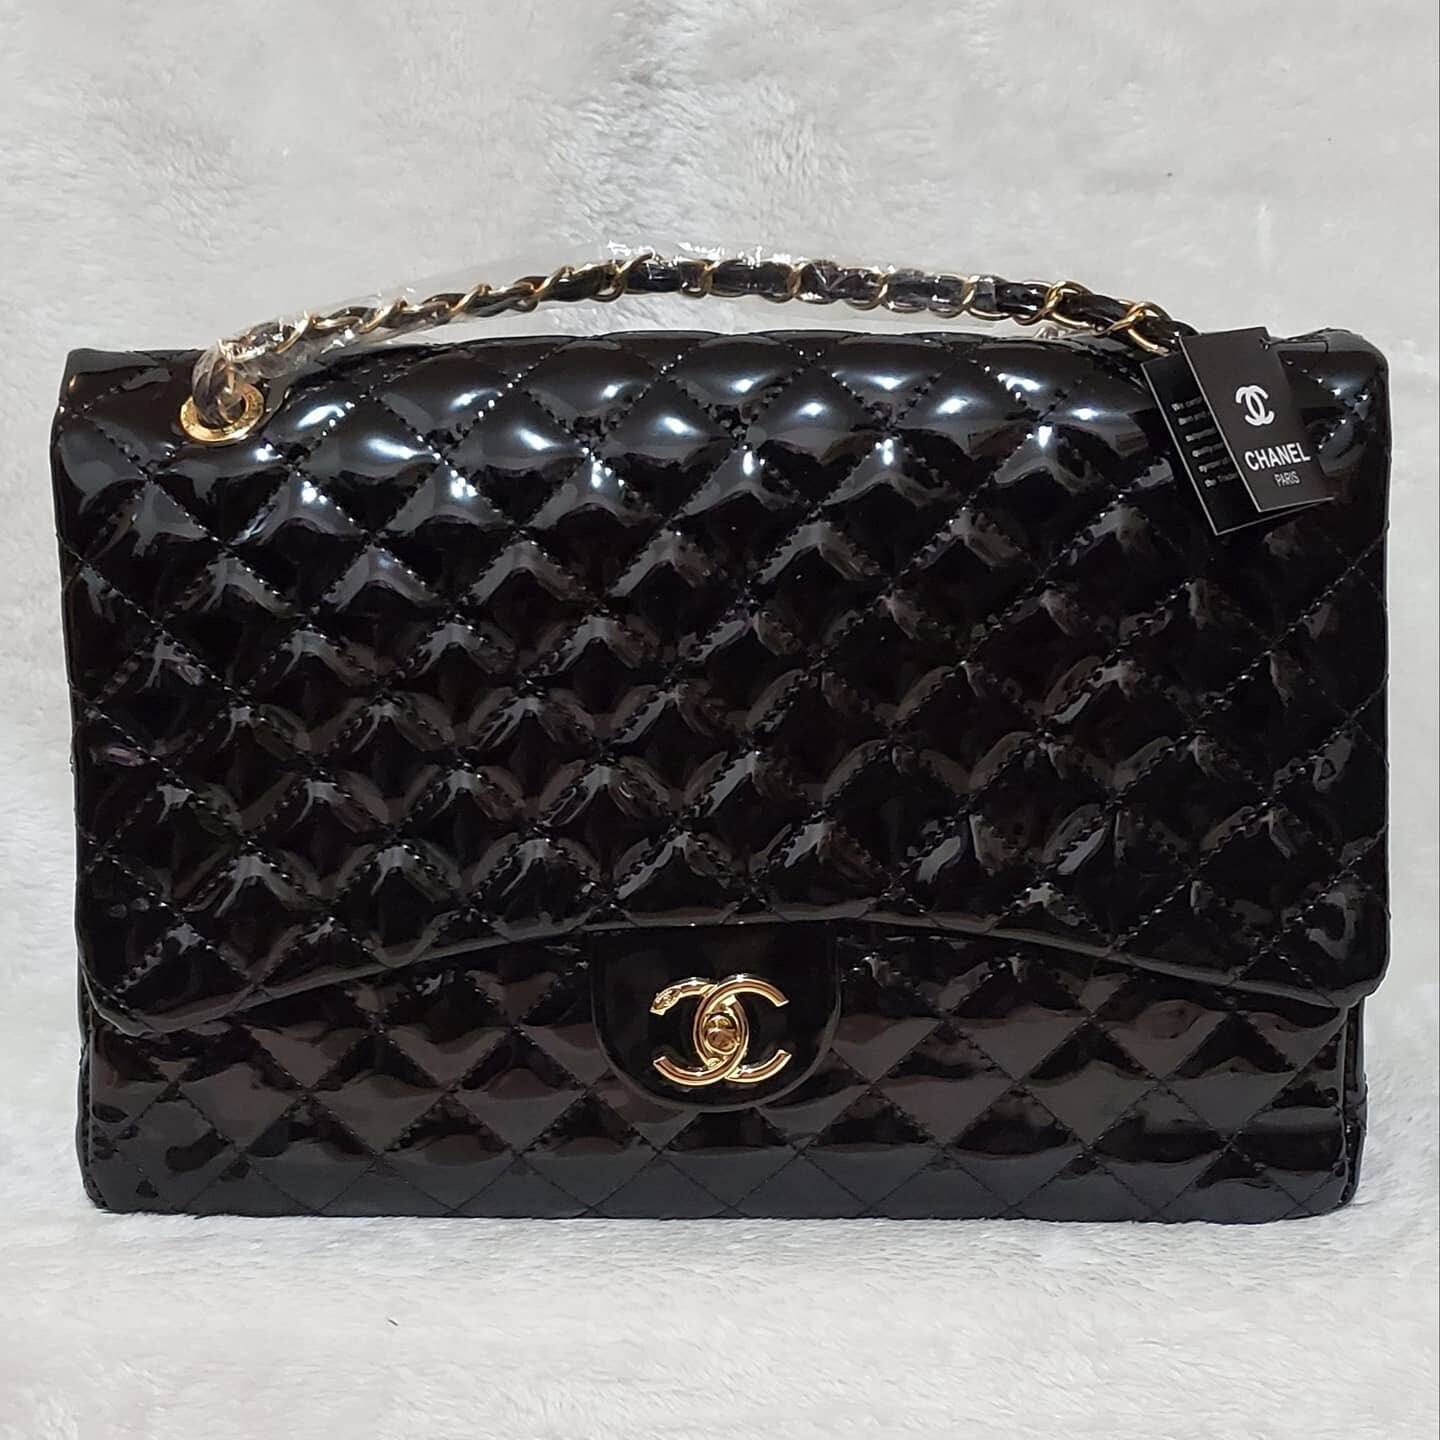 CC Quilted Patent  Leather Large Shoulder Bag